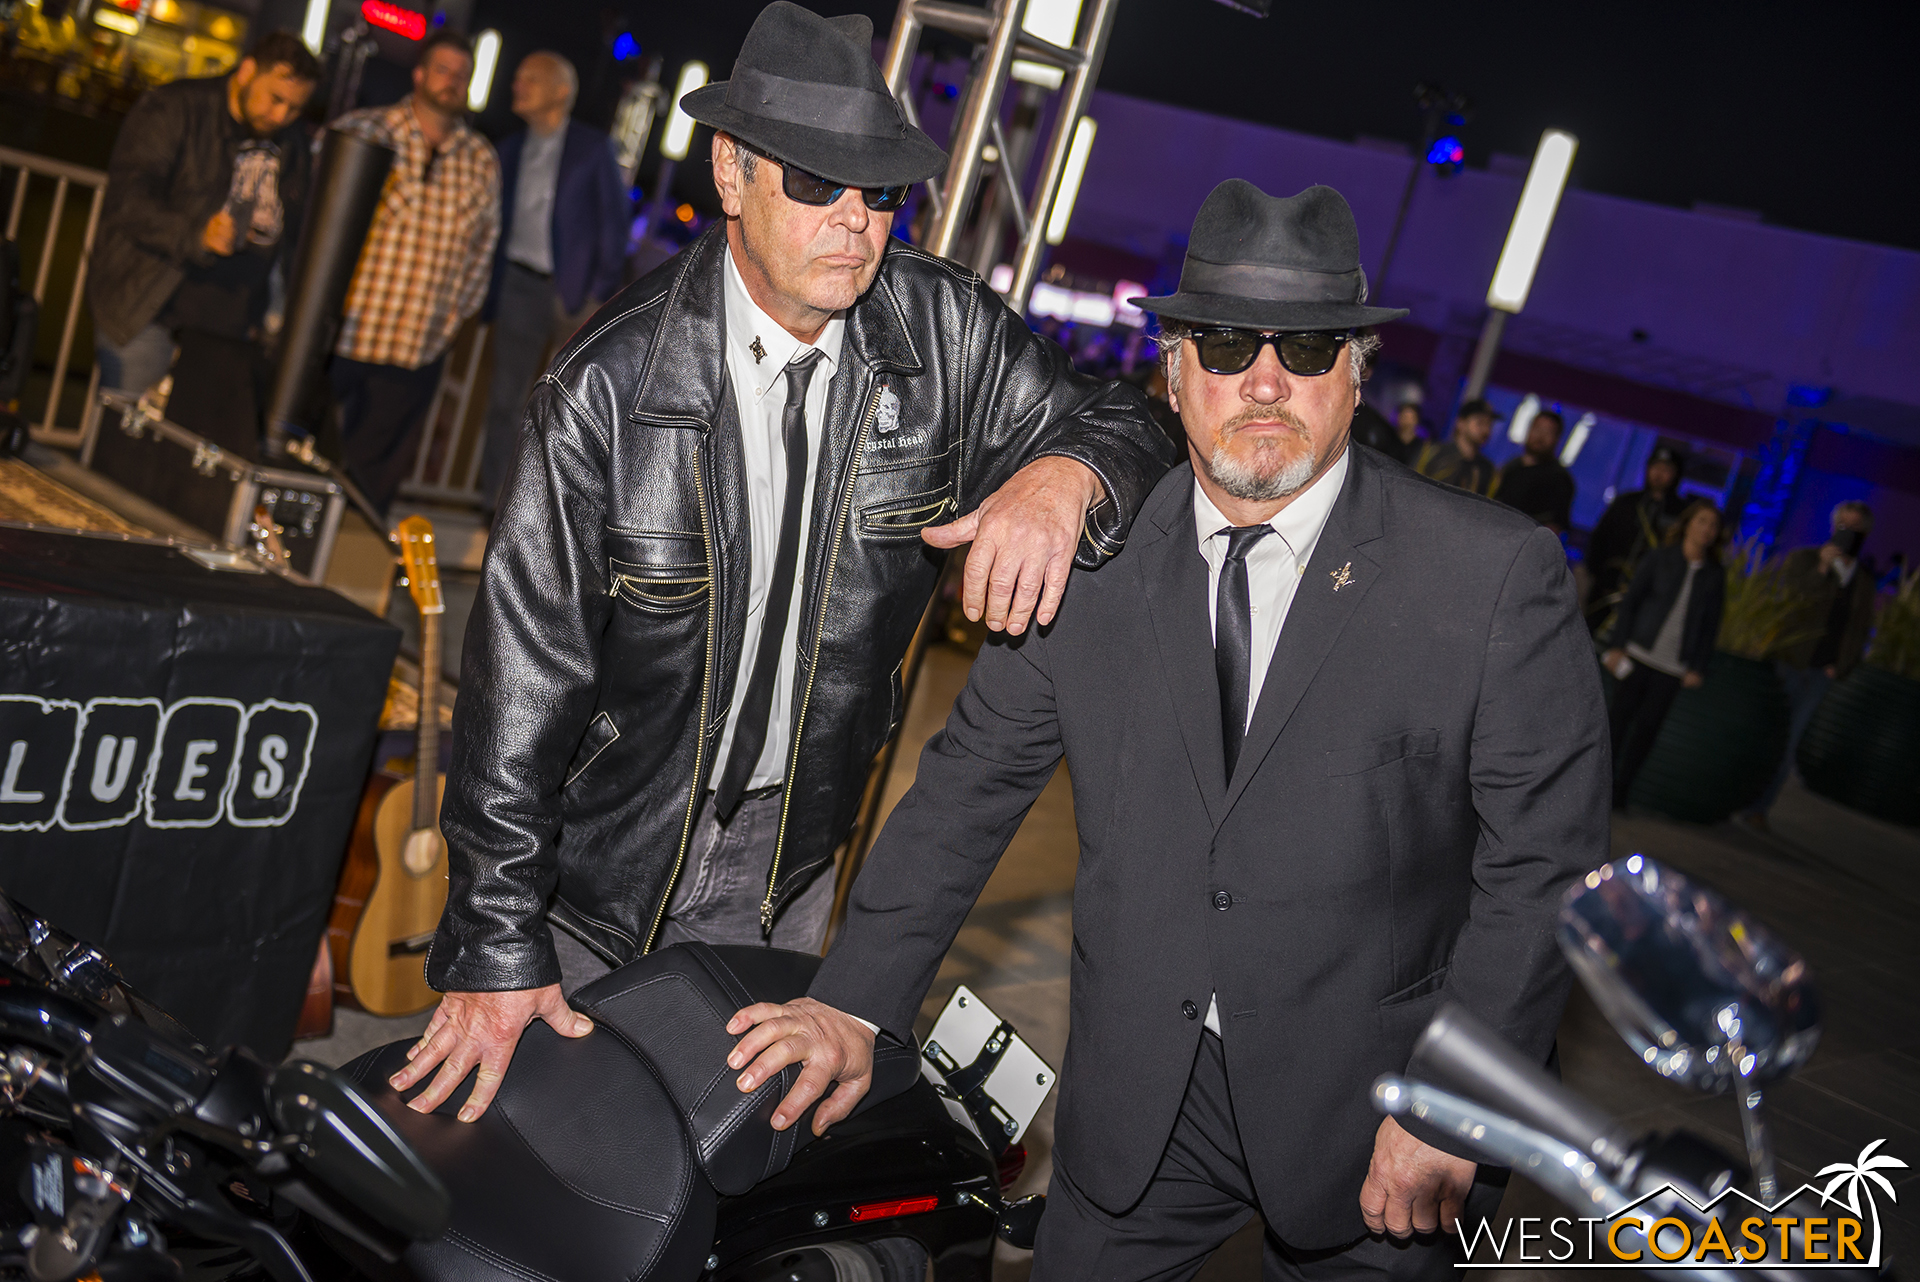 Aykroyd and Beluchi still have time to pose for requisite photos, though.